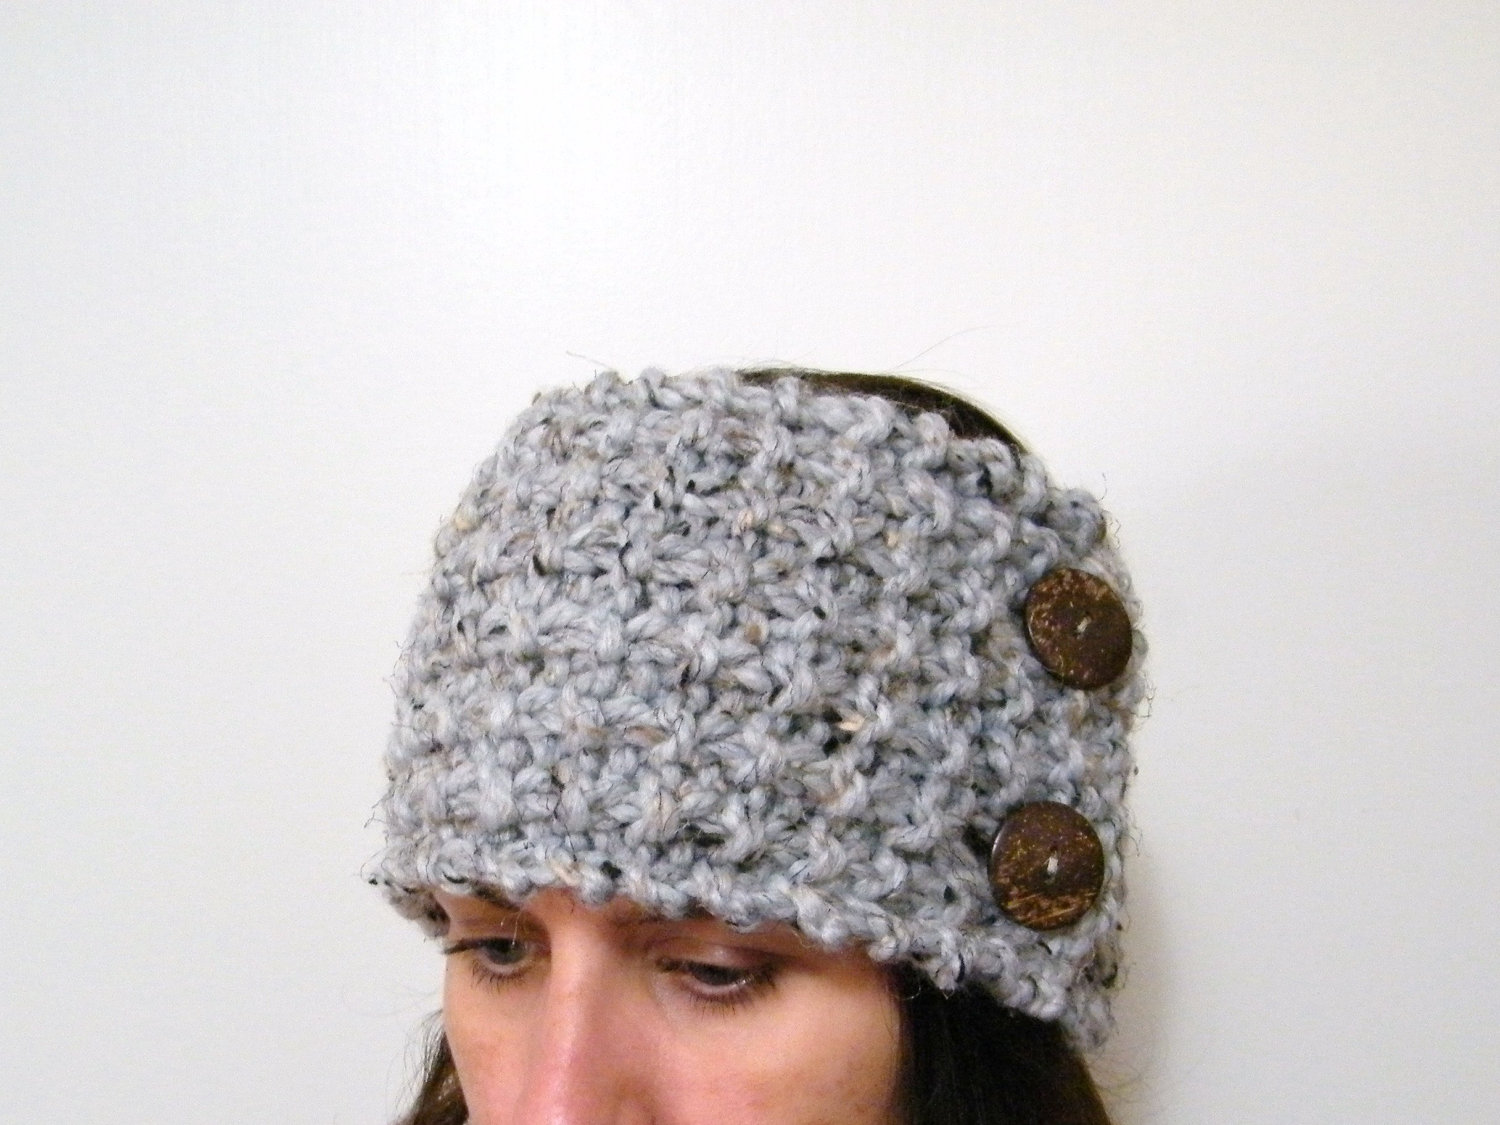 Lewis Knits: Headband / Ear Warmer or Neckwarmer Pattern